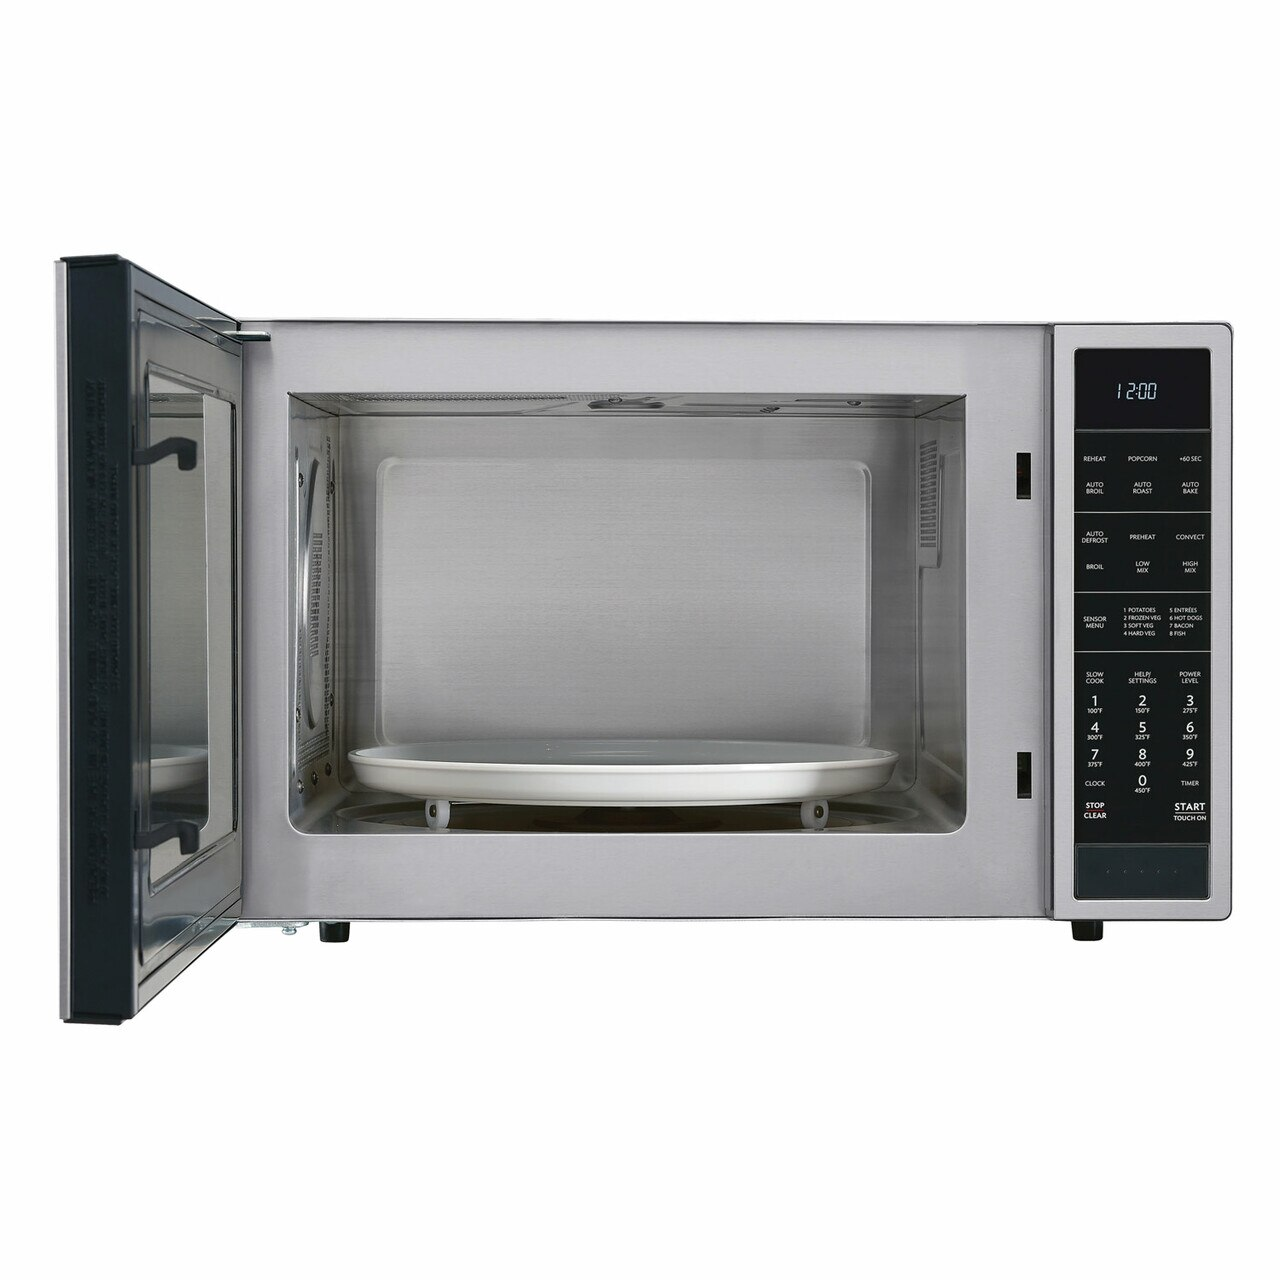 1.5 cu. ft. Sharp Stainless Steel Carousel Convection Microwave (SMC1585BS) – front view with door open